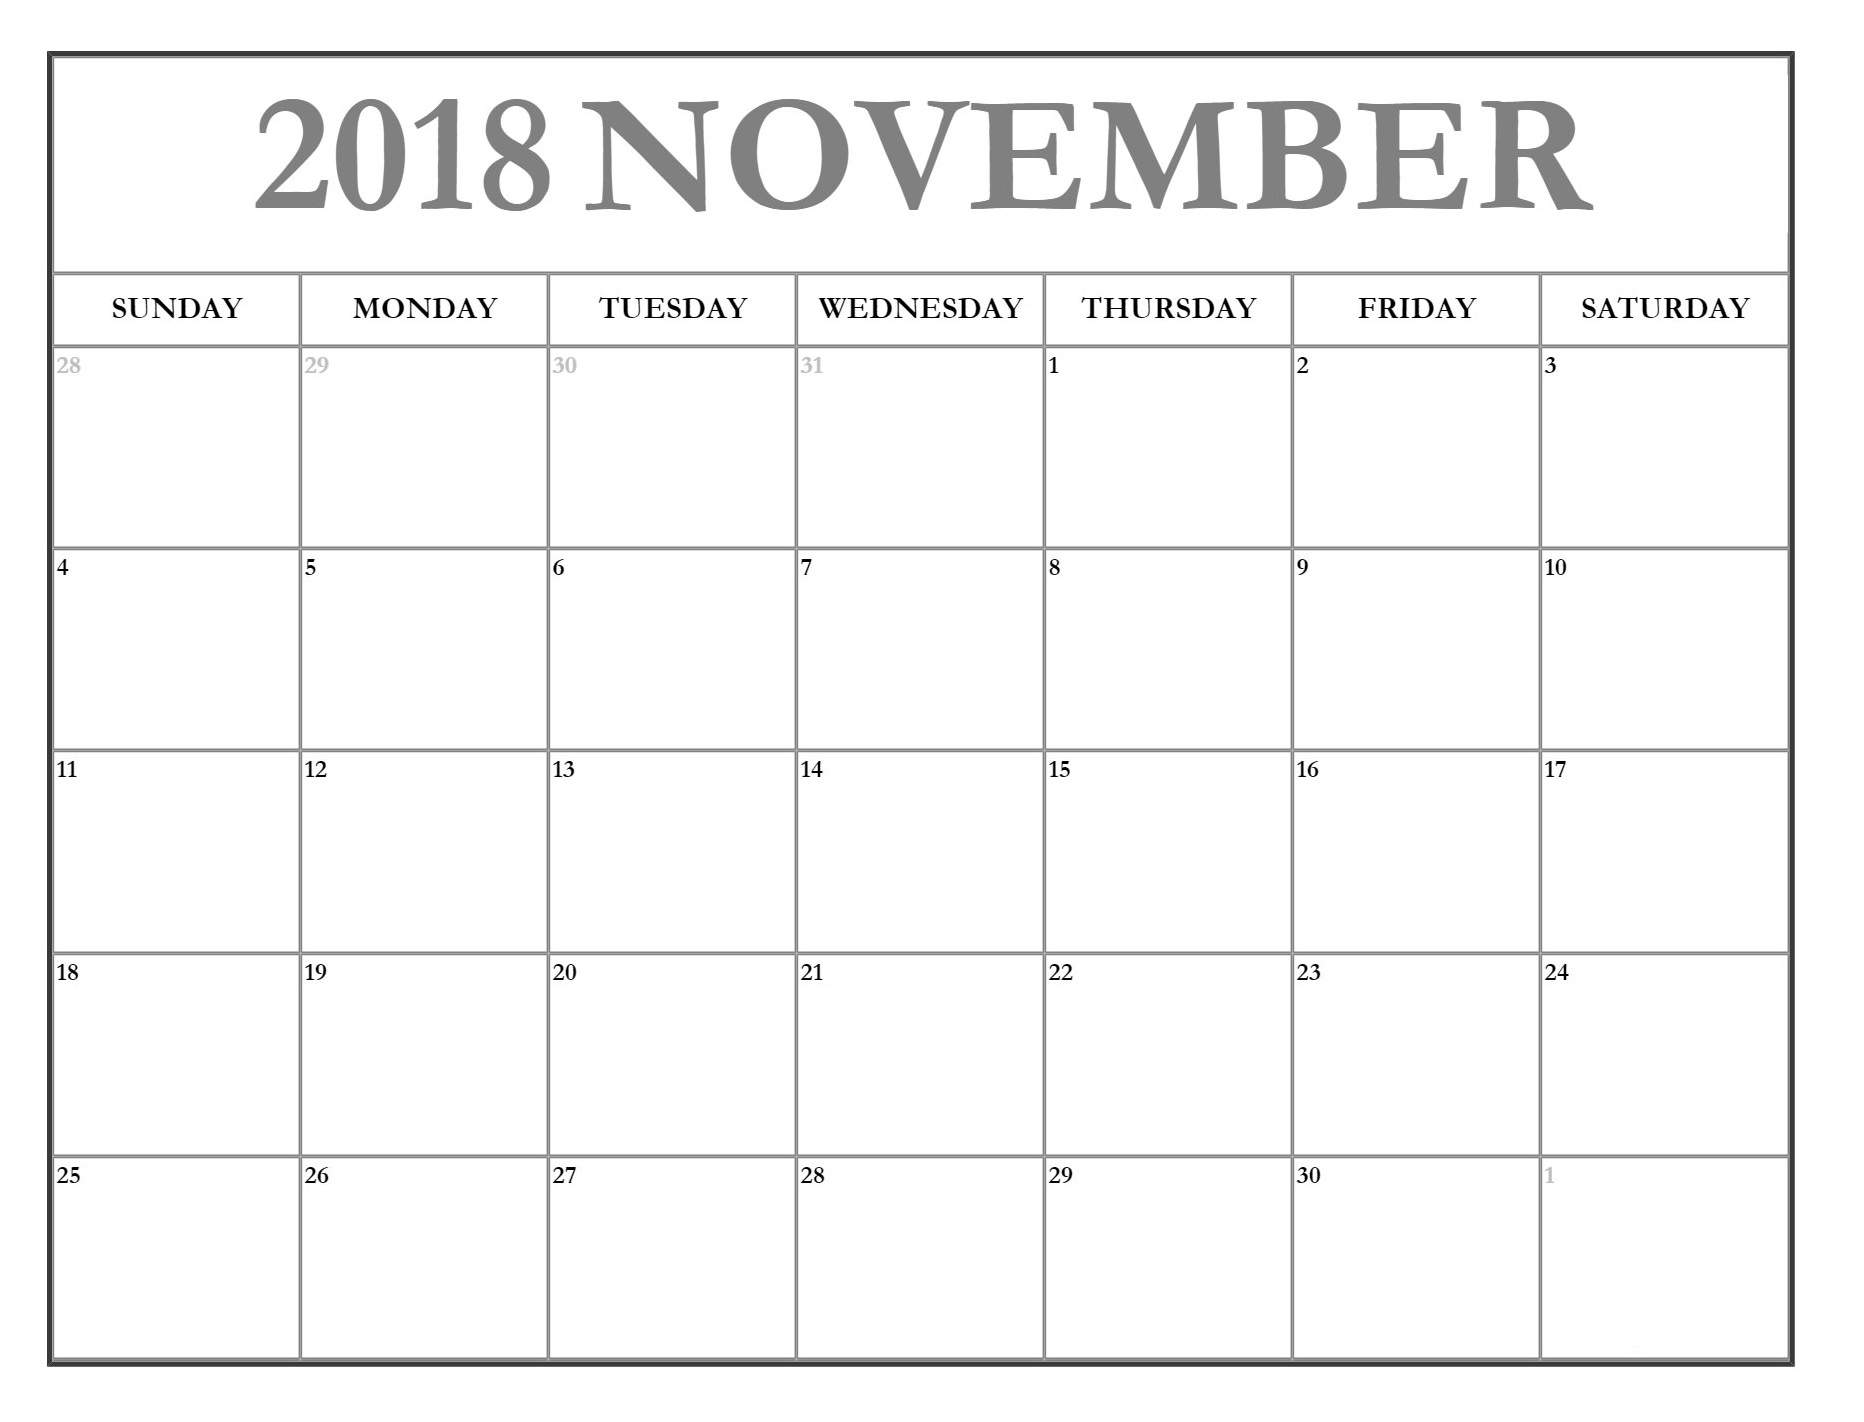 november 2018 printable calendar in ms word free printable calendar November 2018 Calendar MS Word erdferdf